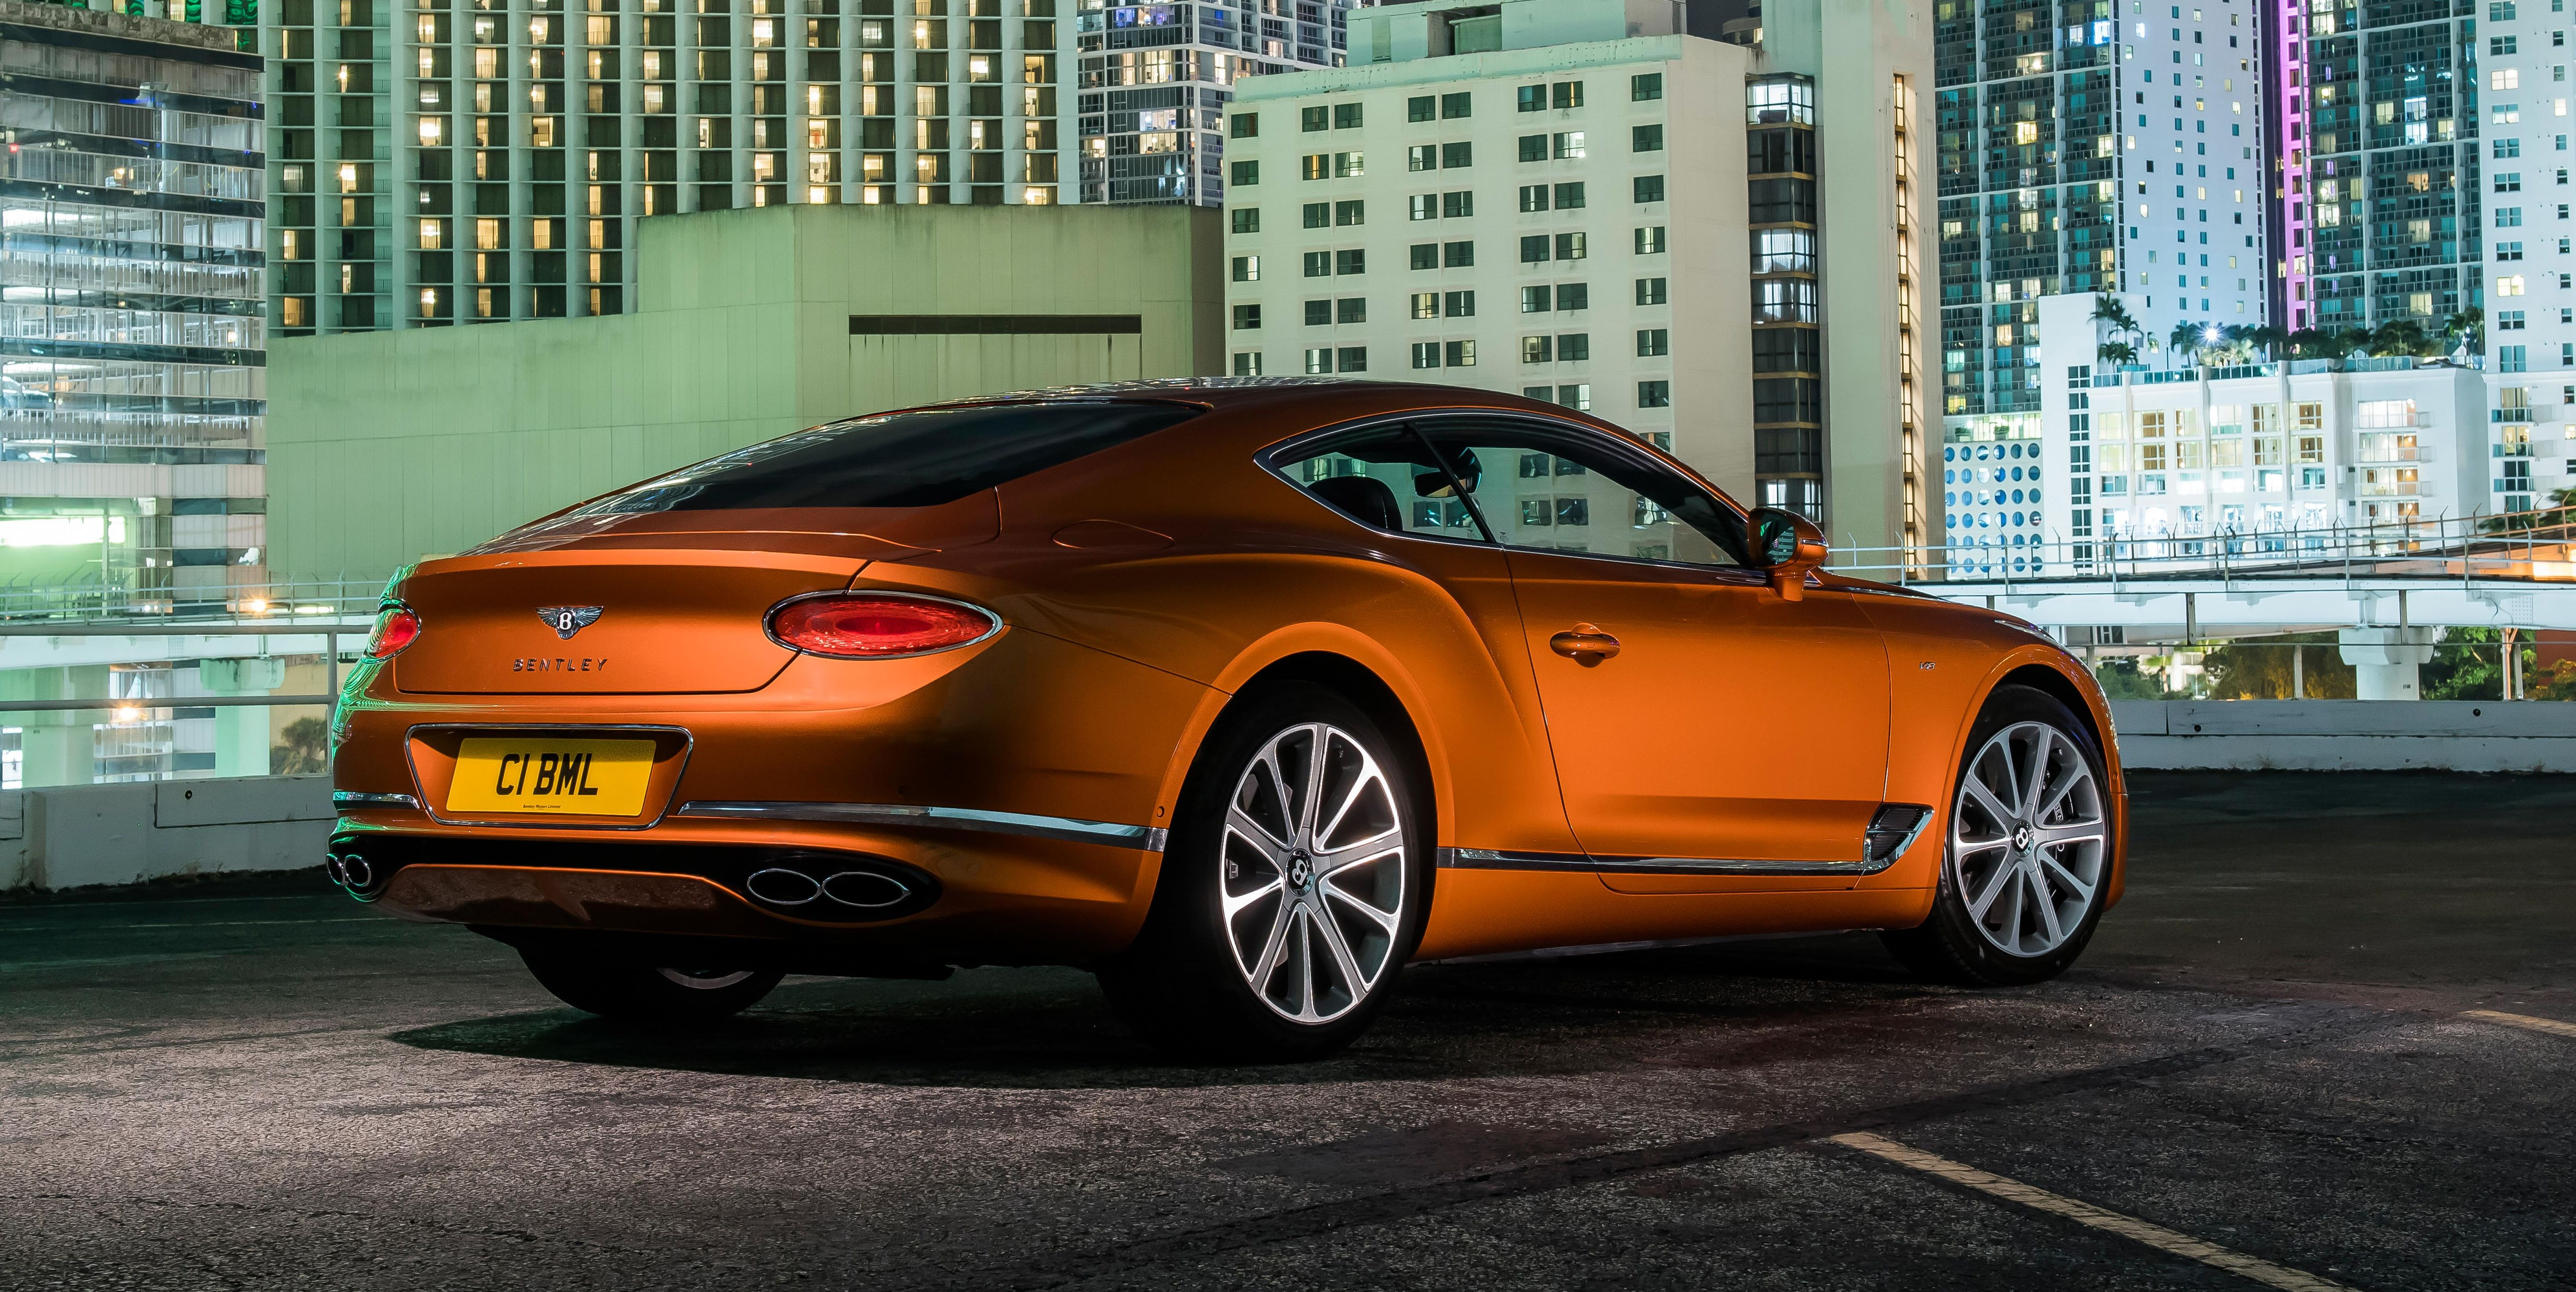 Photos of the 2020 Bentley Continental GT V8